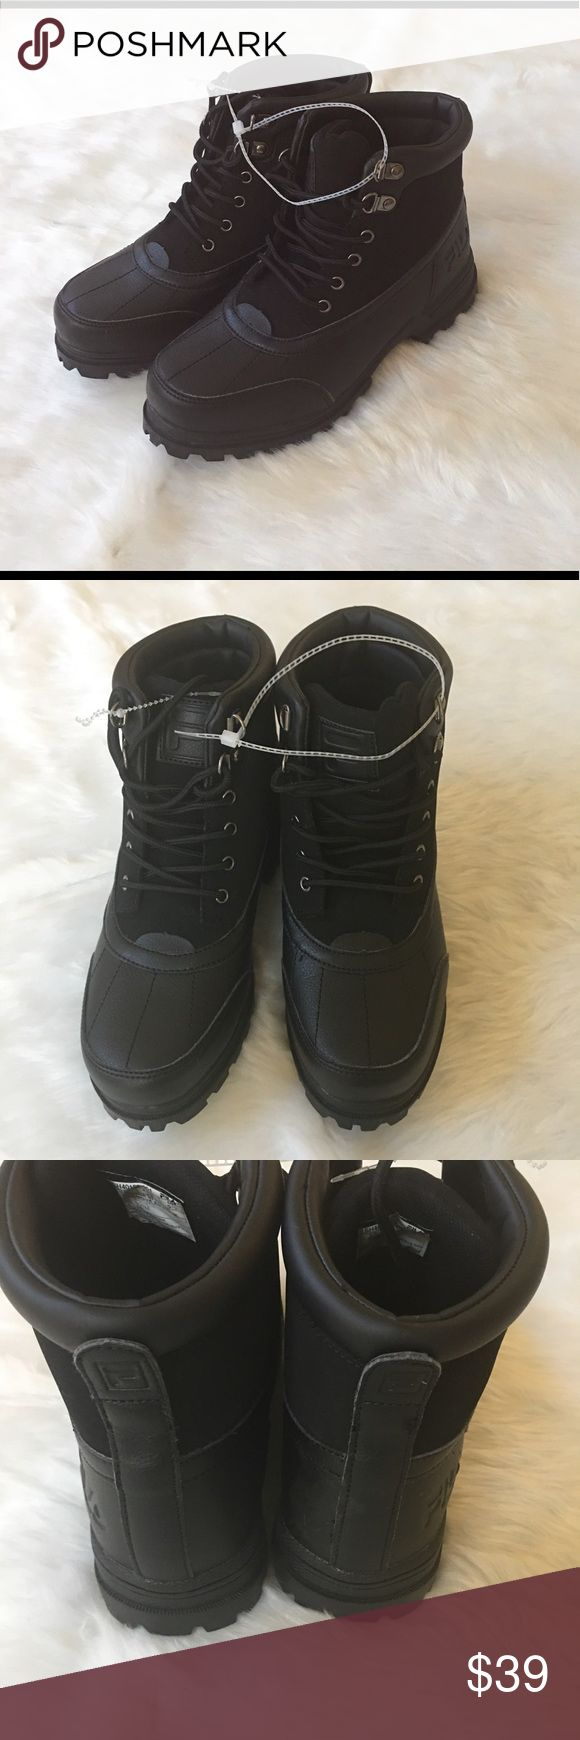 Men's Fila Black Boots size 6.5 Brand new with tag   Webbing lace-up closure for a strong and secure fit   The sturdy design ensures a snug fit and keeps your foot comfortable   This shoe has a thick outsole with lugs for excellent traction and good grip. It has a padded collar for cushioned comfort  Please view photos regarding condition and details Fila Shoes Boots